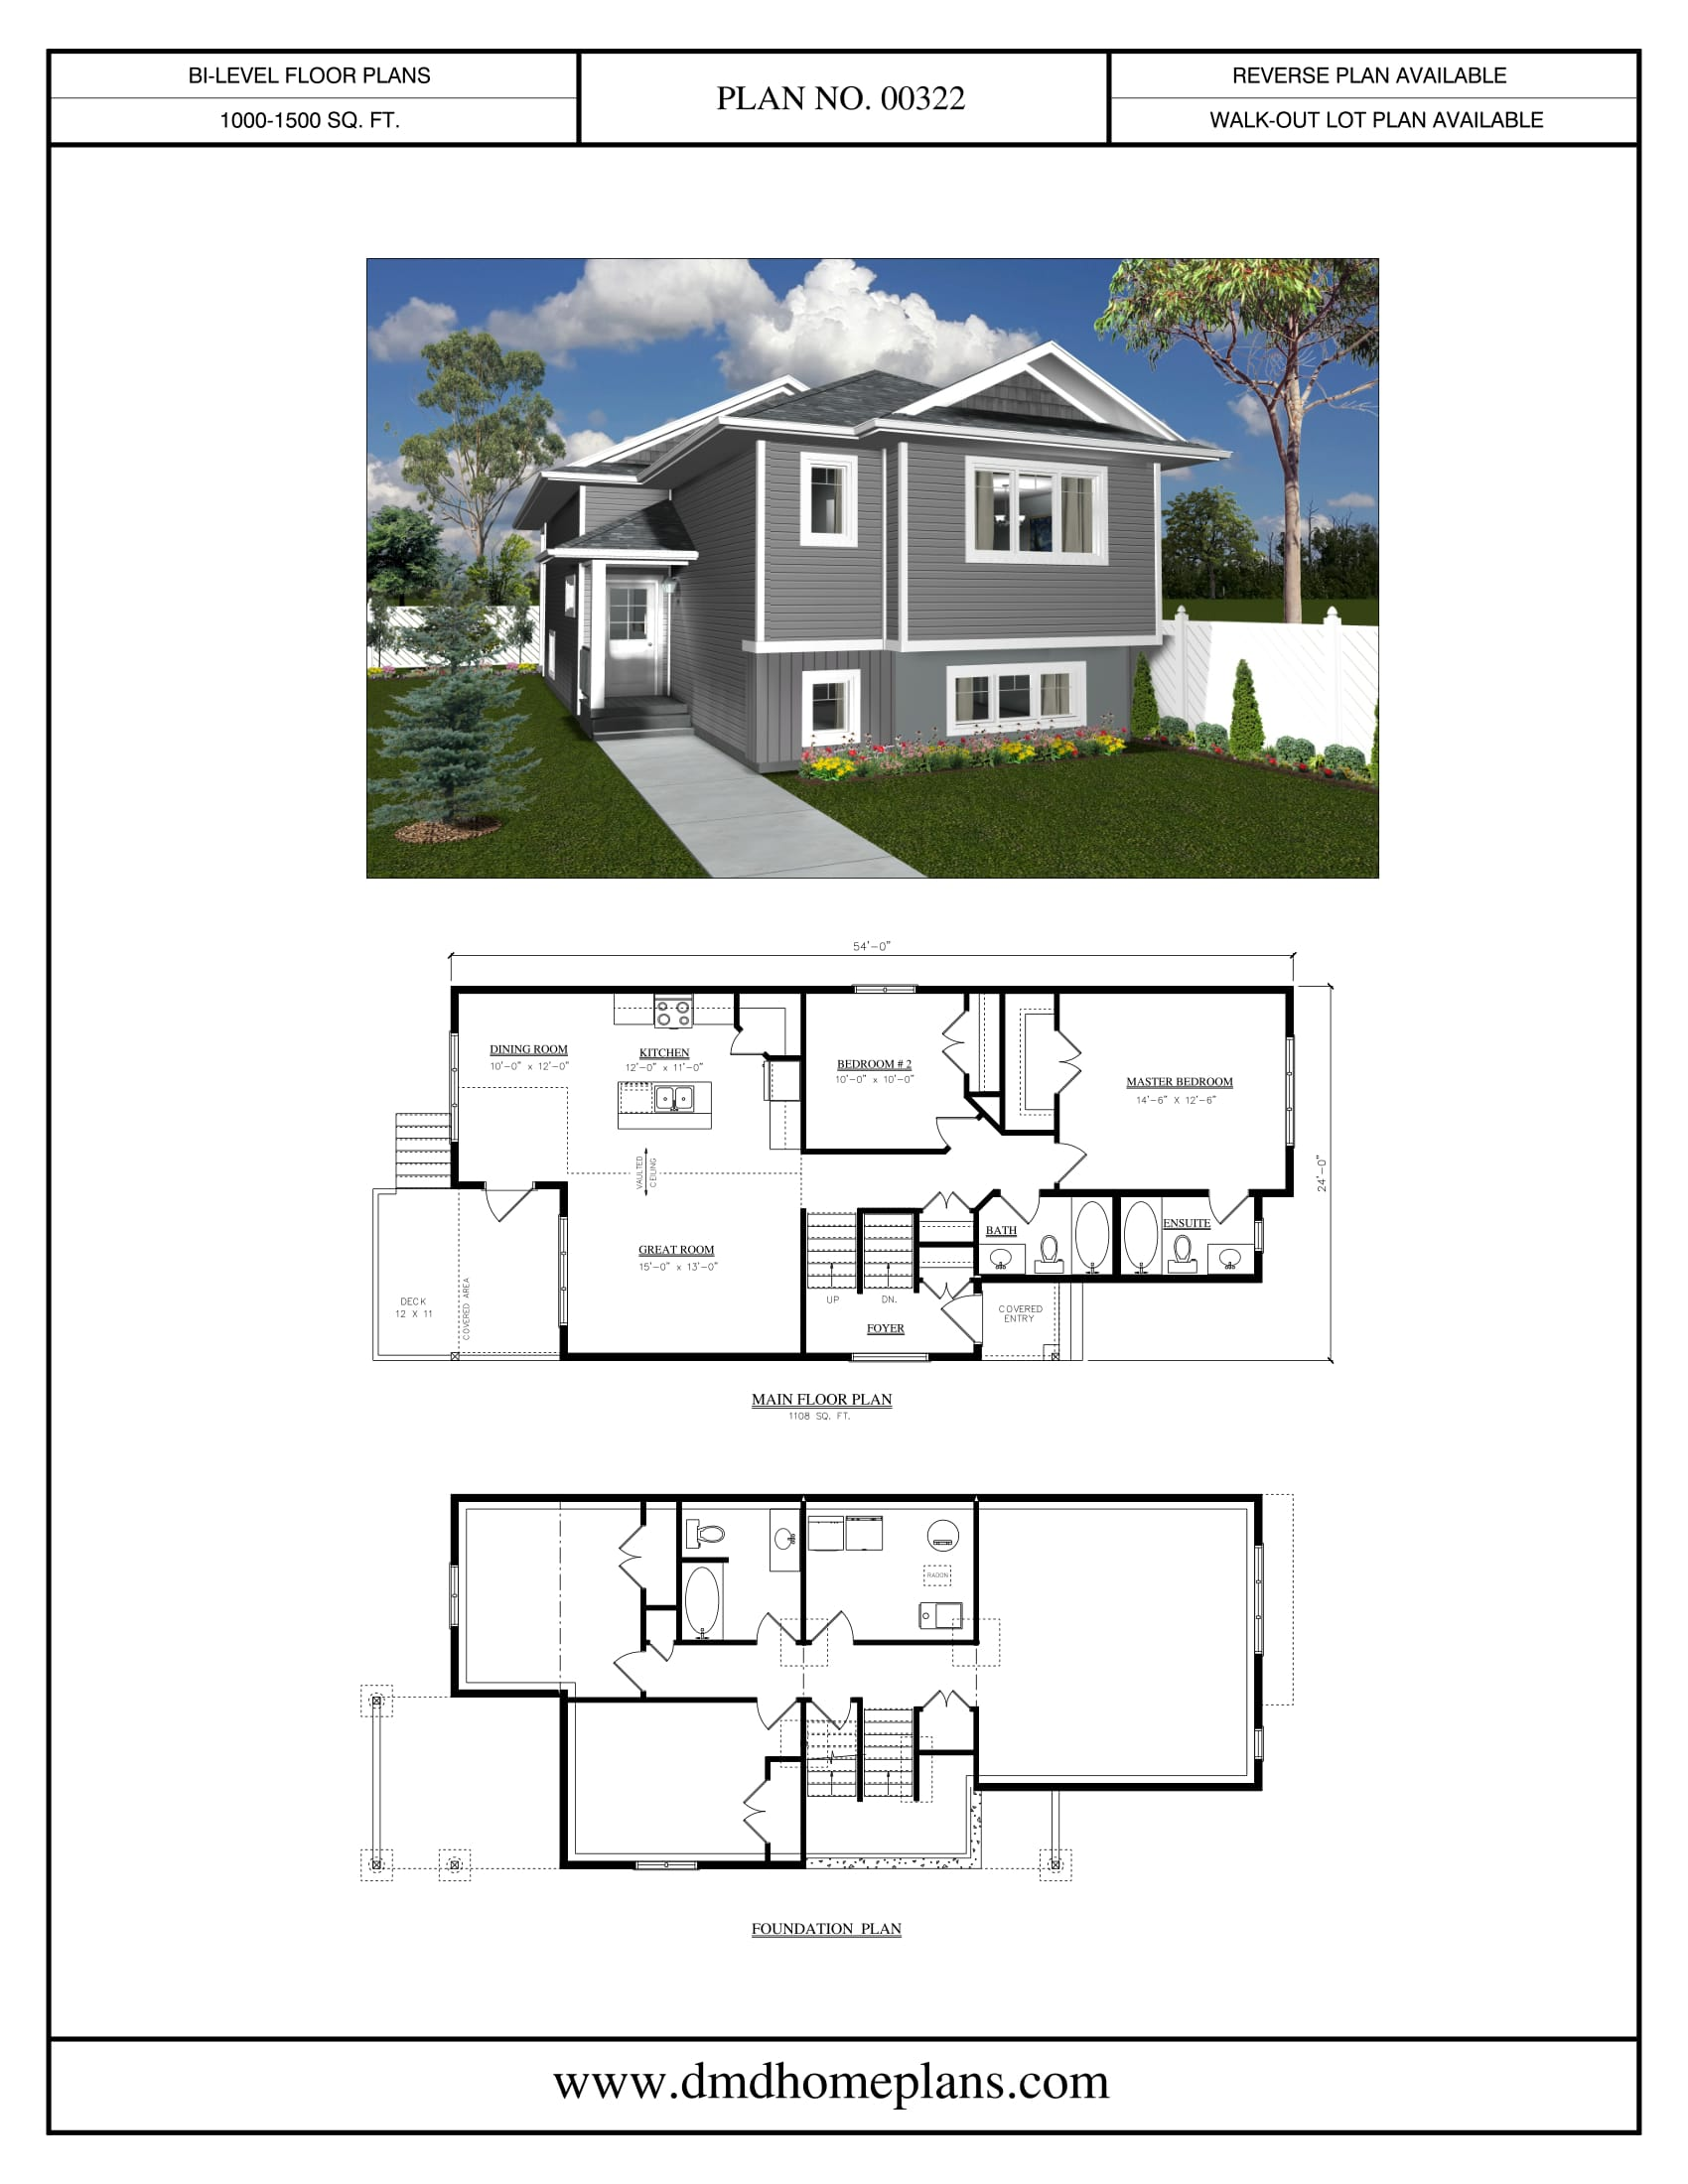 Bi level plans dmd home plans for Bi level home designs